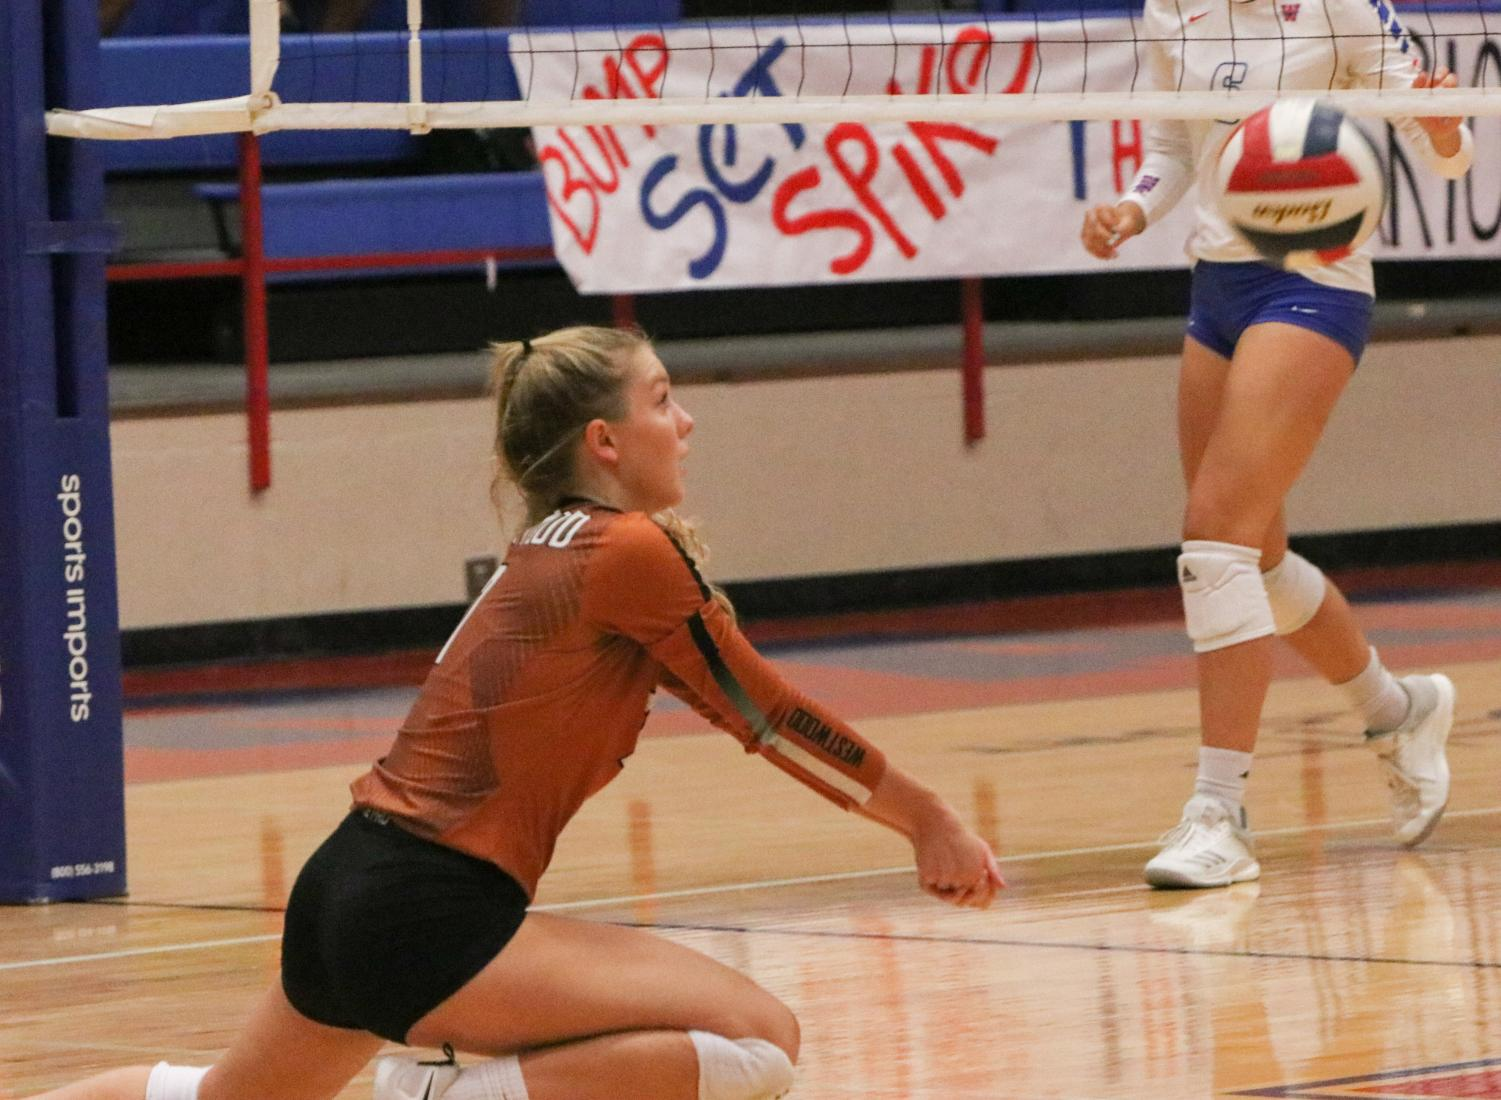 Maddie+Gillispie+%2720+slides+on+her+knees+to+pop+up+a+ball.+The+play+ended+with+Westwood+winning+the+point.